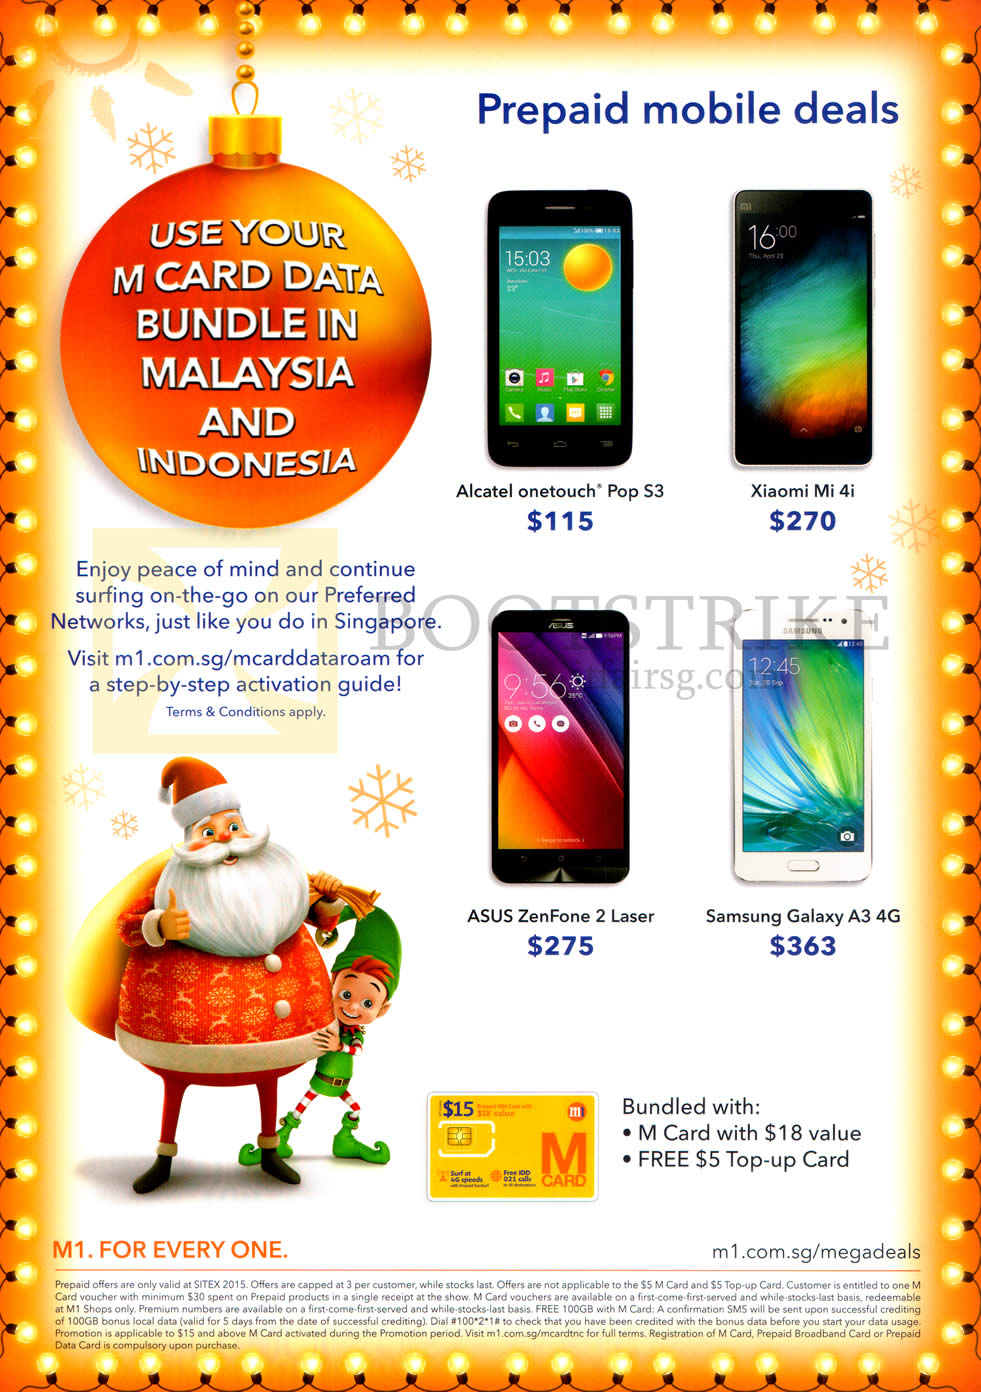 SITEX 2015 price list image brochure of M1 Prepaid Mobile Deals Alcatel Onetouch Pop S3, Xiaomi Mi 4i, Asus Zenfone 2 Laser, Samsung Galaxy A3